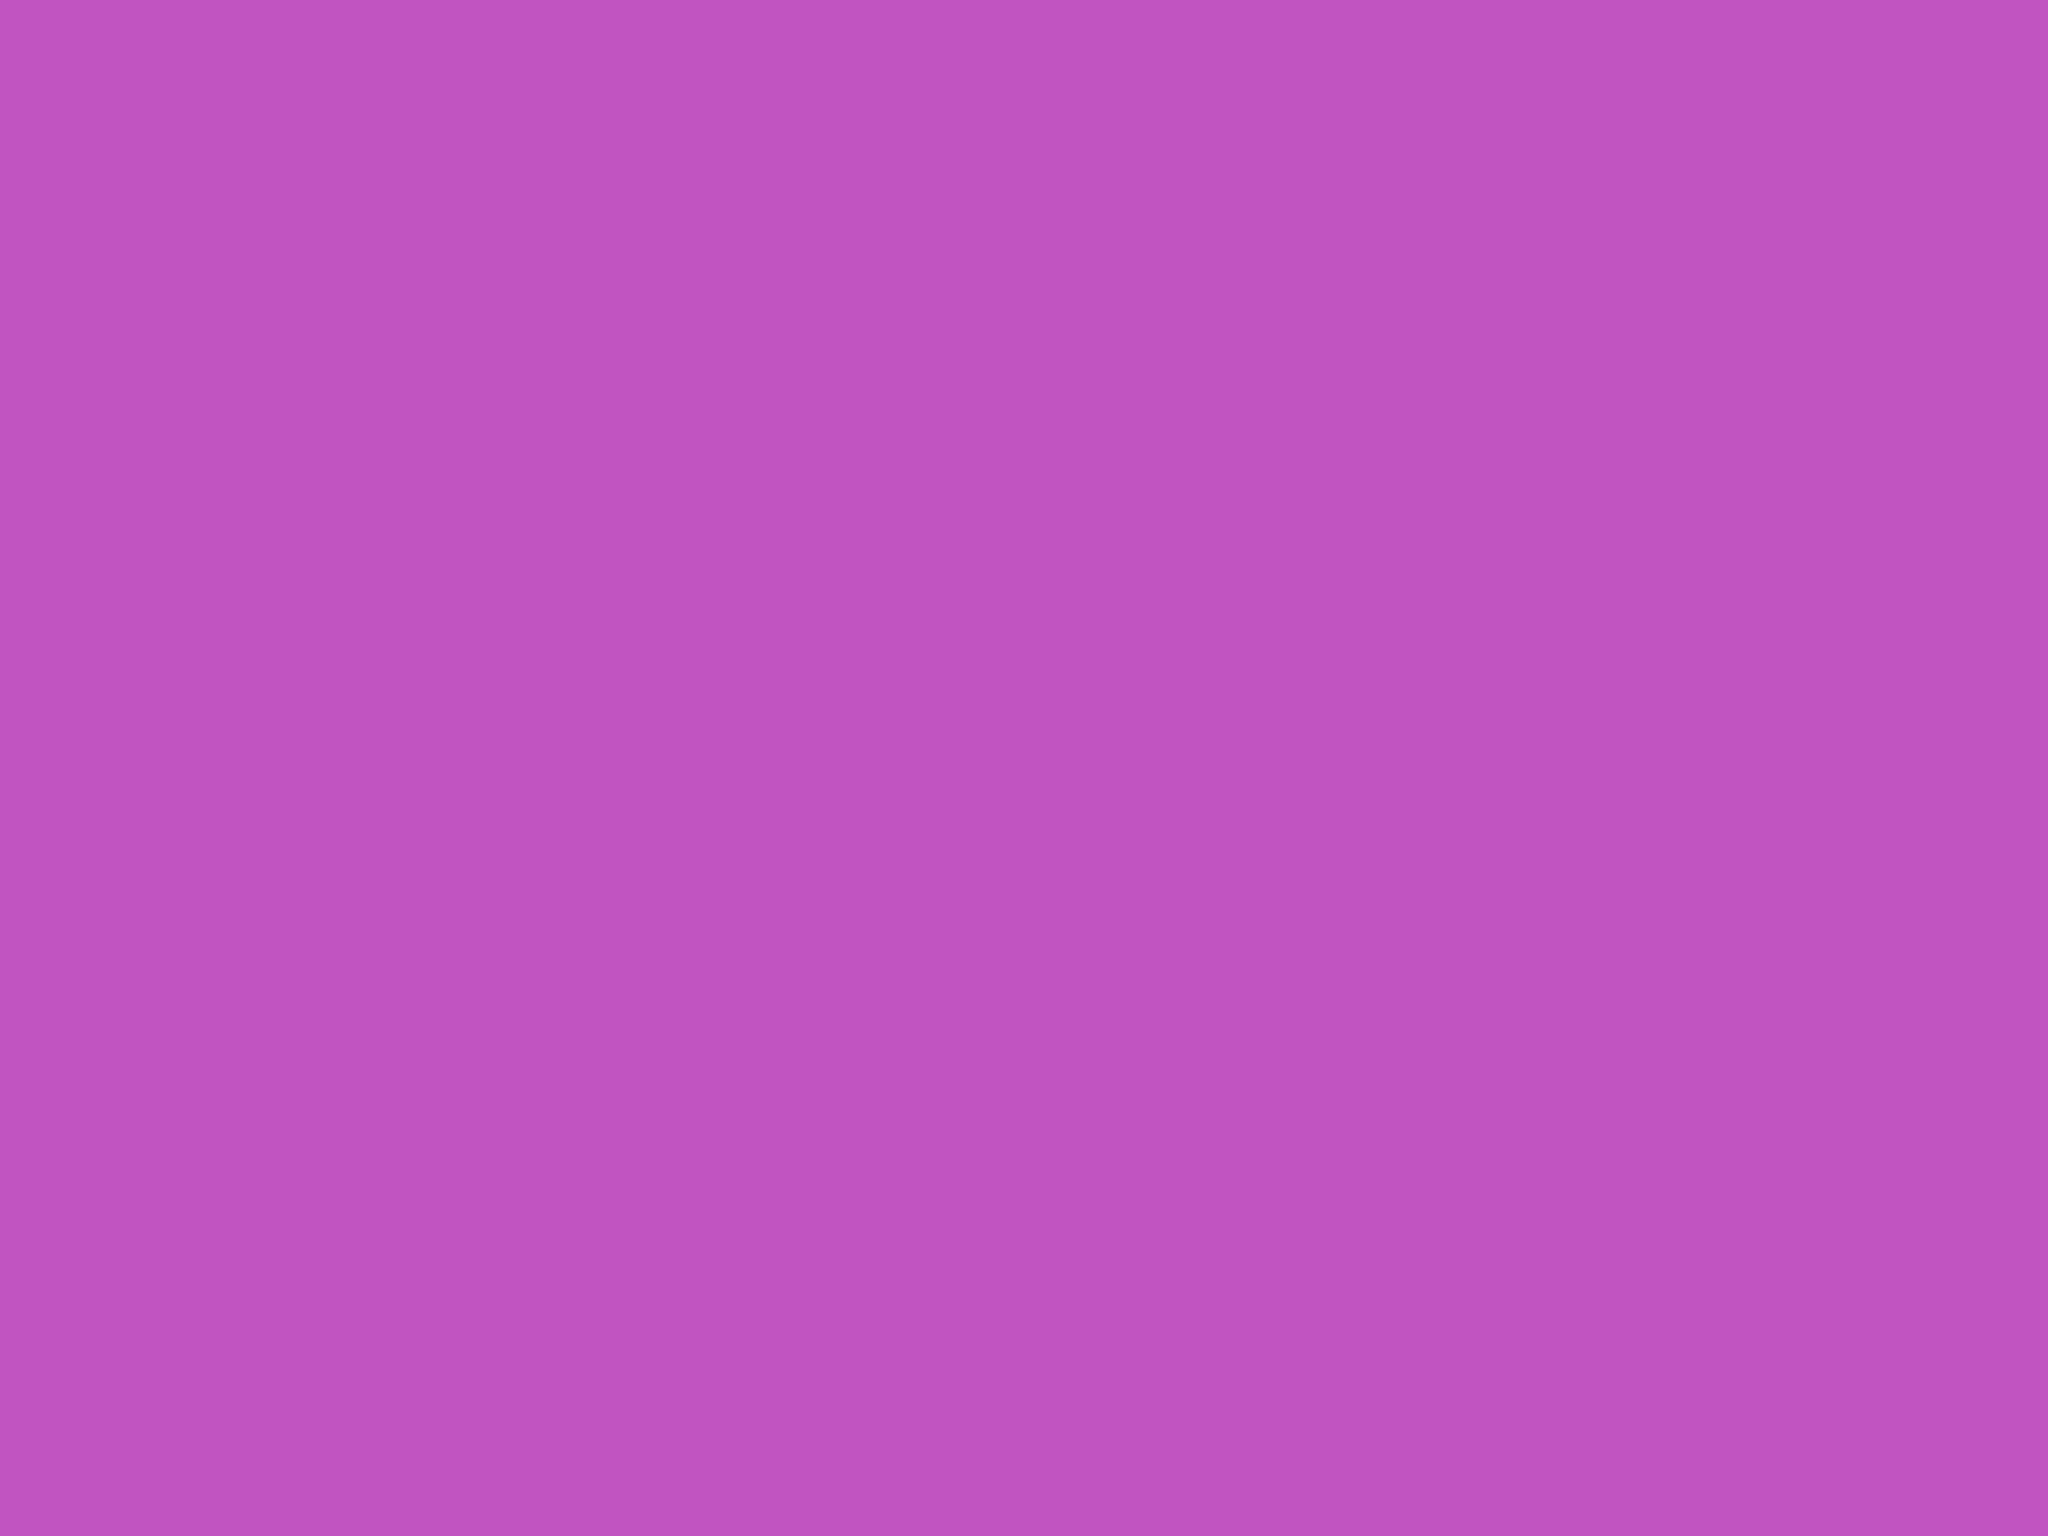 2048x1536 Deep Fuchsia Solid Color Background